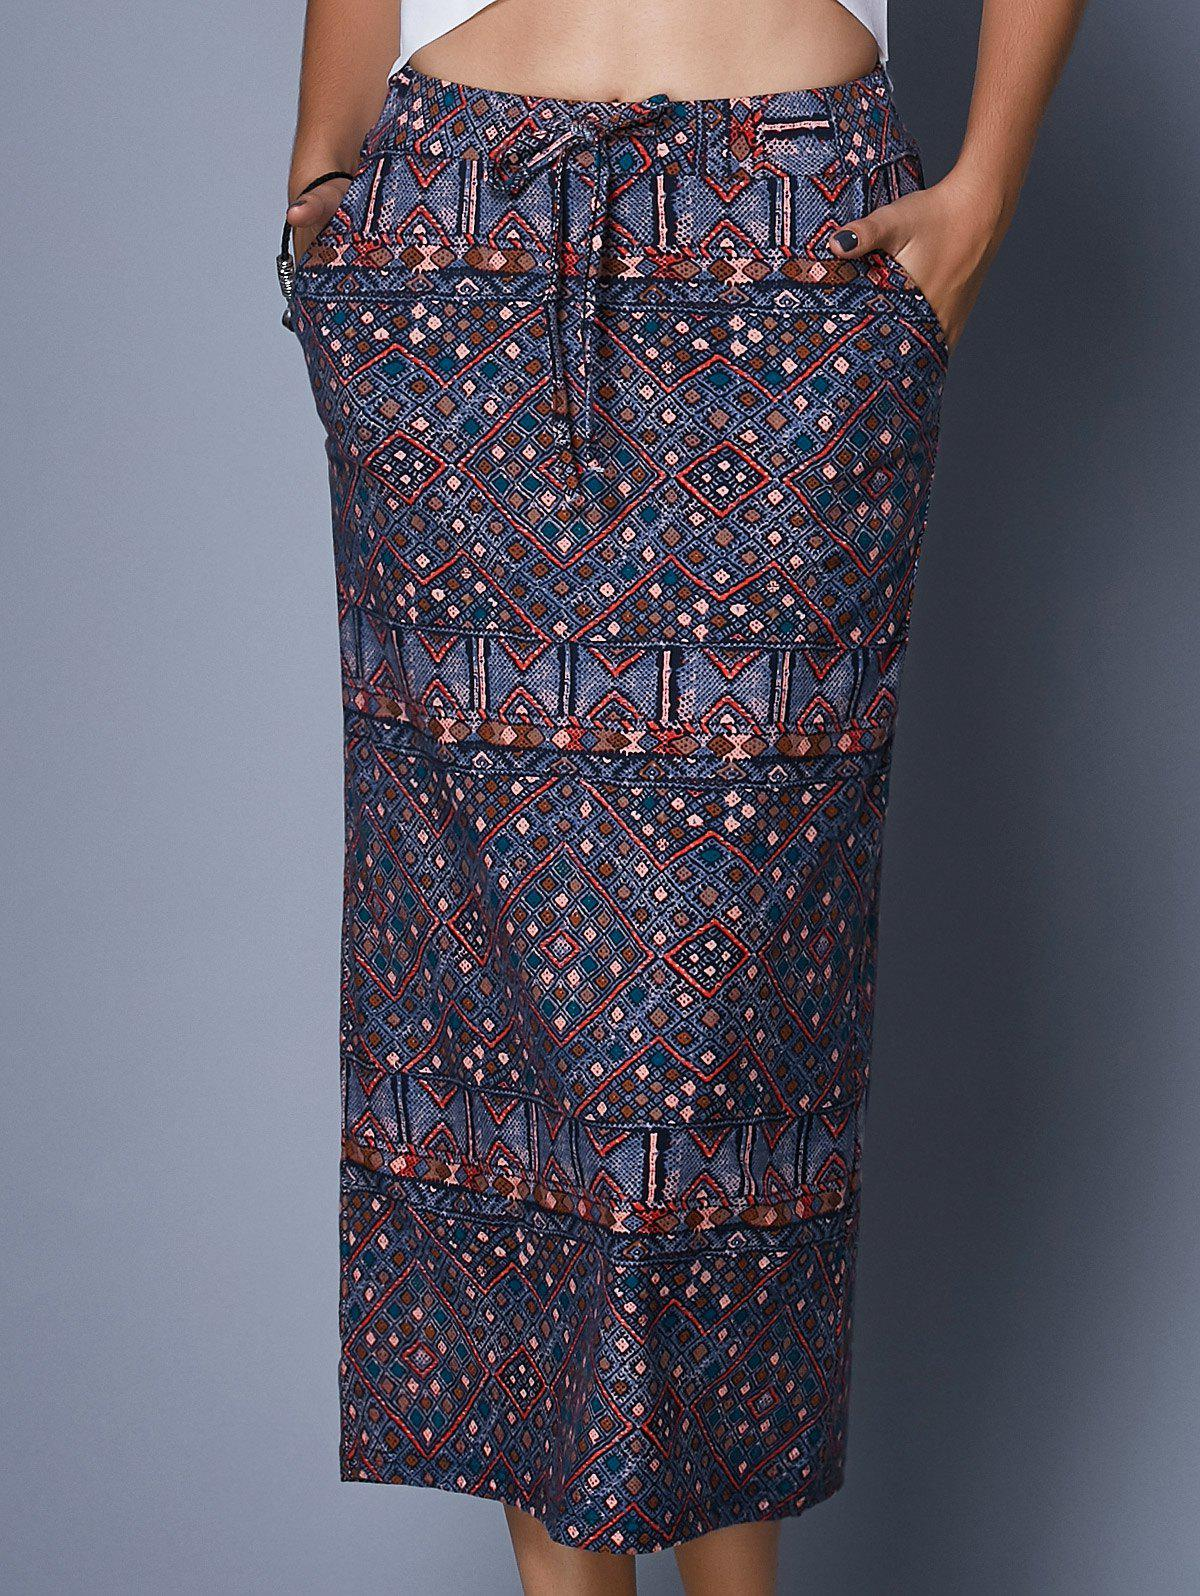 Ethnic Style High Waist Drawstring Tribal Print Women's Midi Skirt - COLORMIX ONE SIZE(FIT SIZE XS TO M)